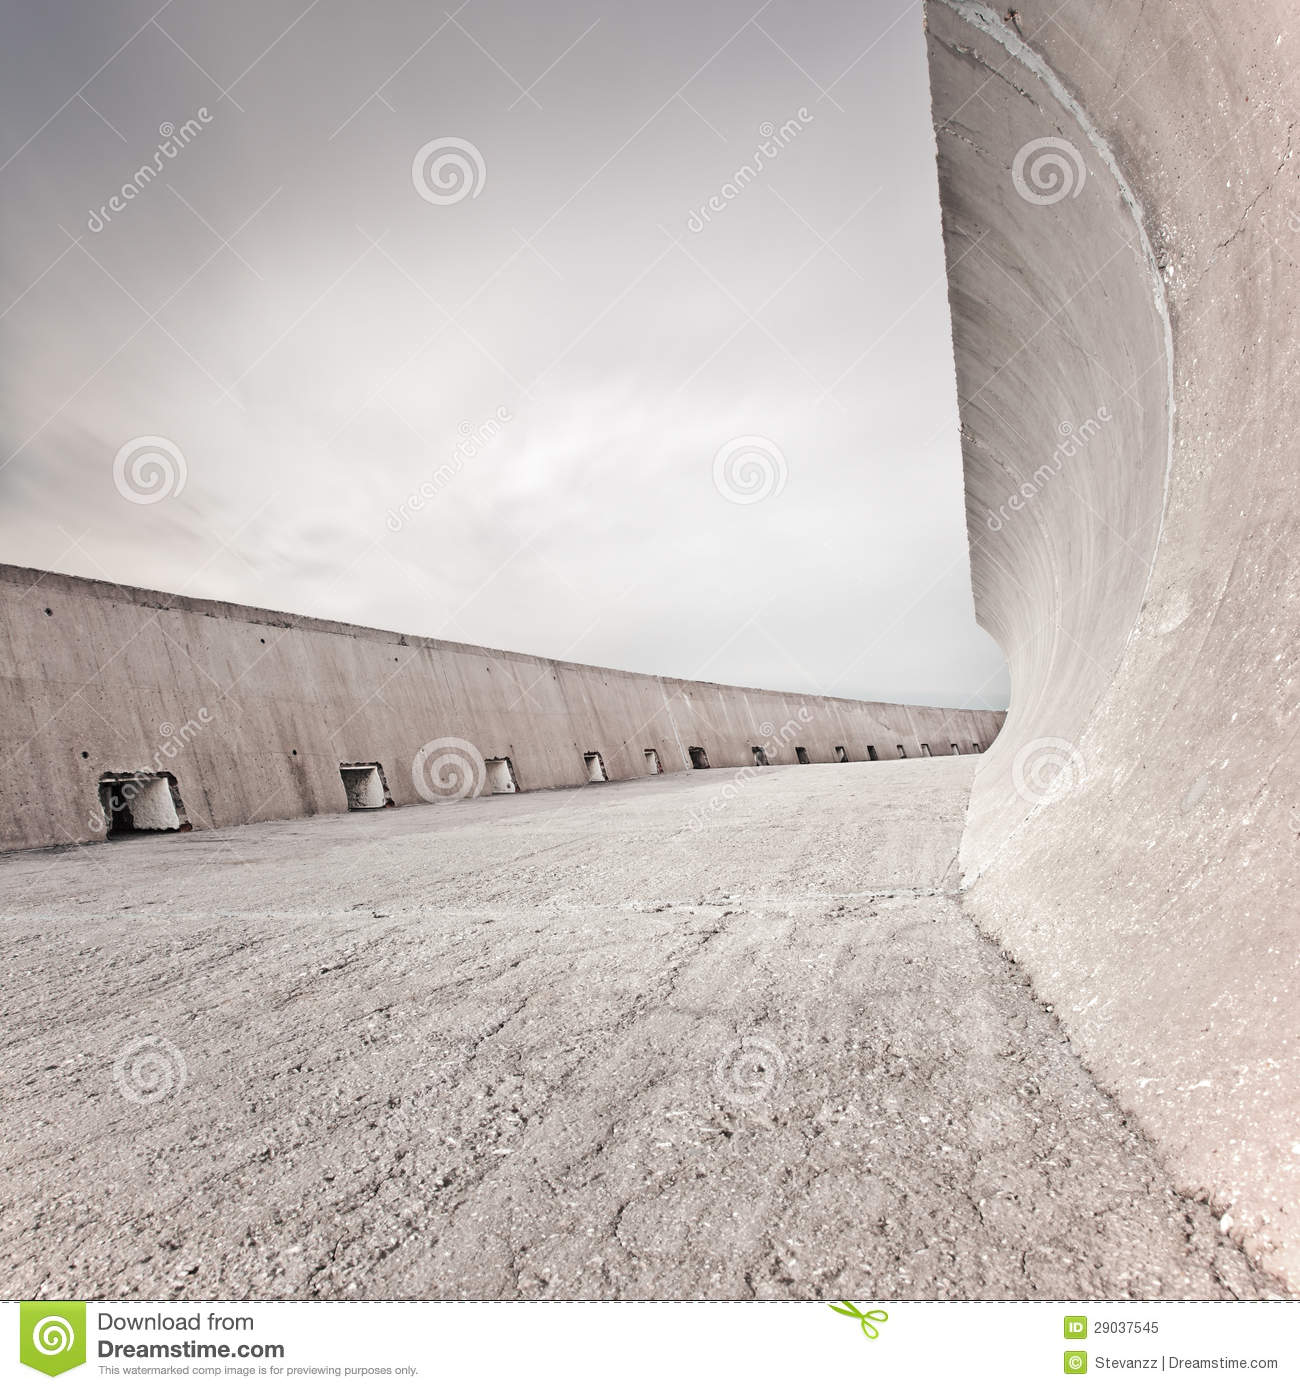 Concrete Dike Wall Design : Concrete dike or dam structure wall and floor cloudy sky